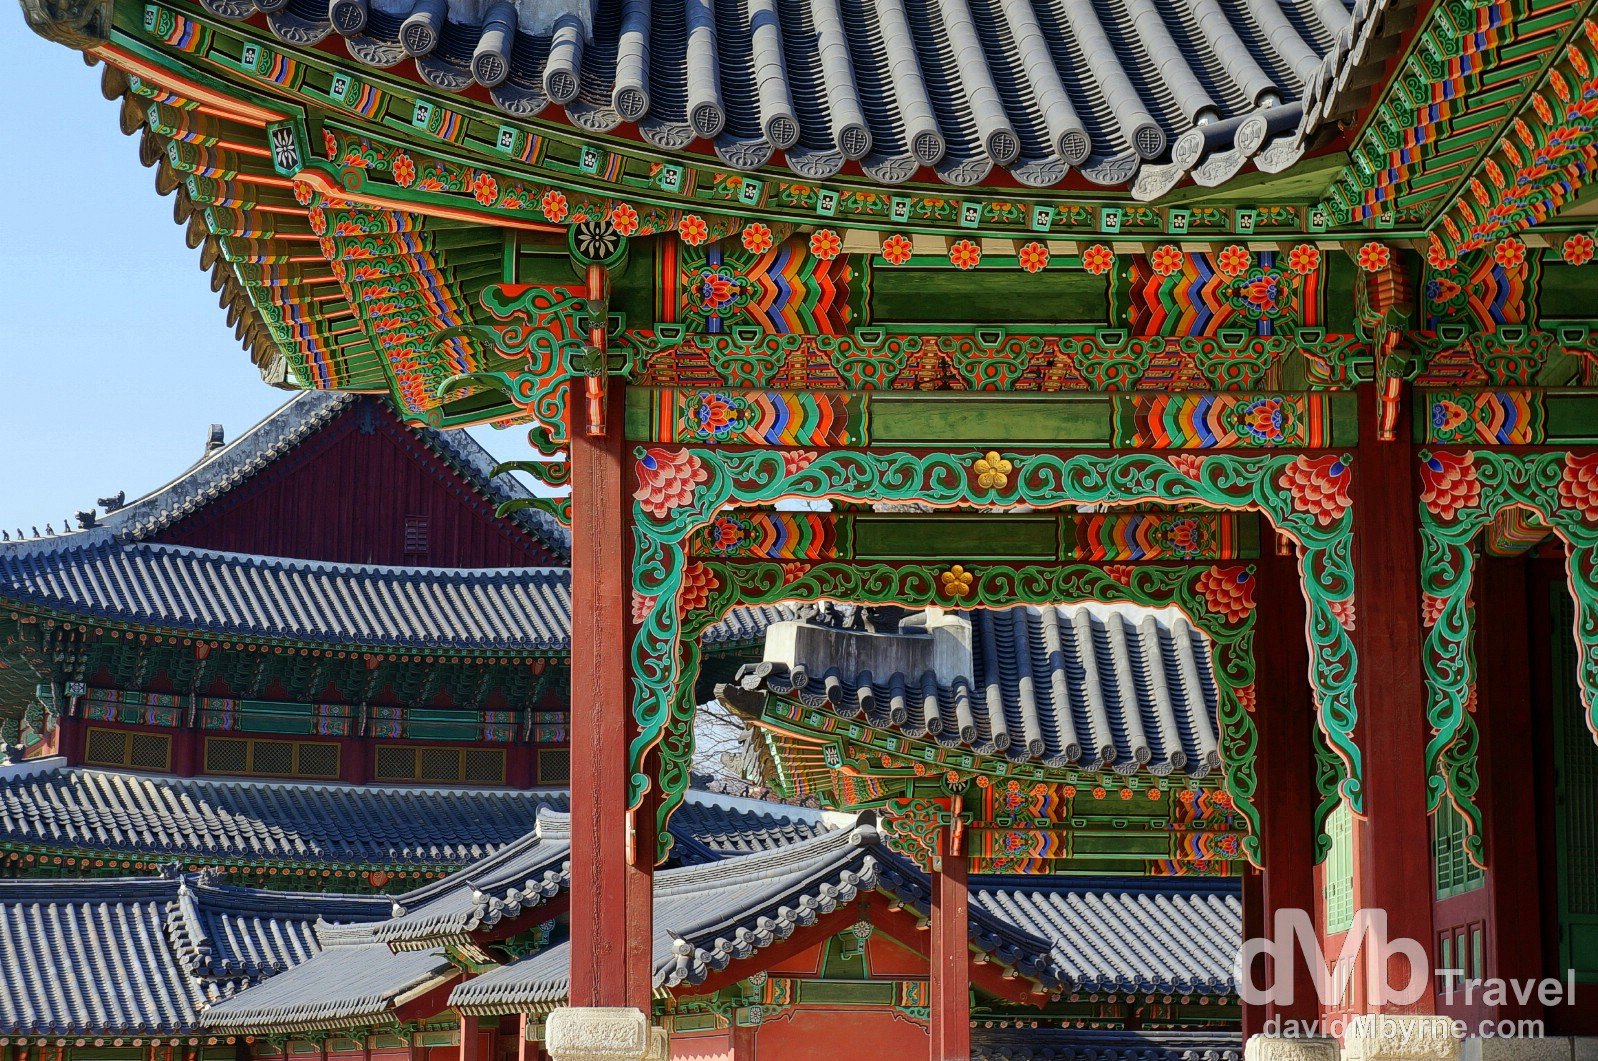 Buildings in the grounds of the UNESCO World Heritage-listed Changdeokgung Palace Complex in Seoul, South Korea. January 18th 2014